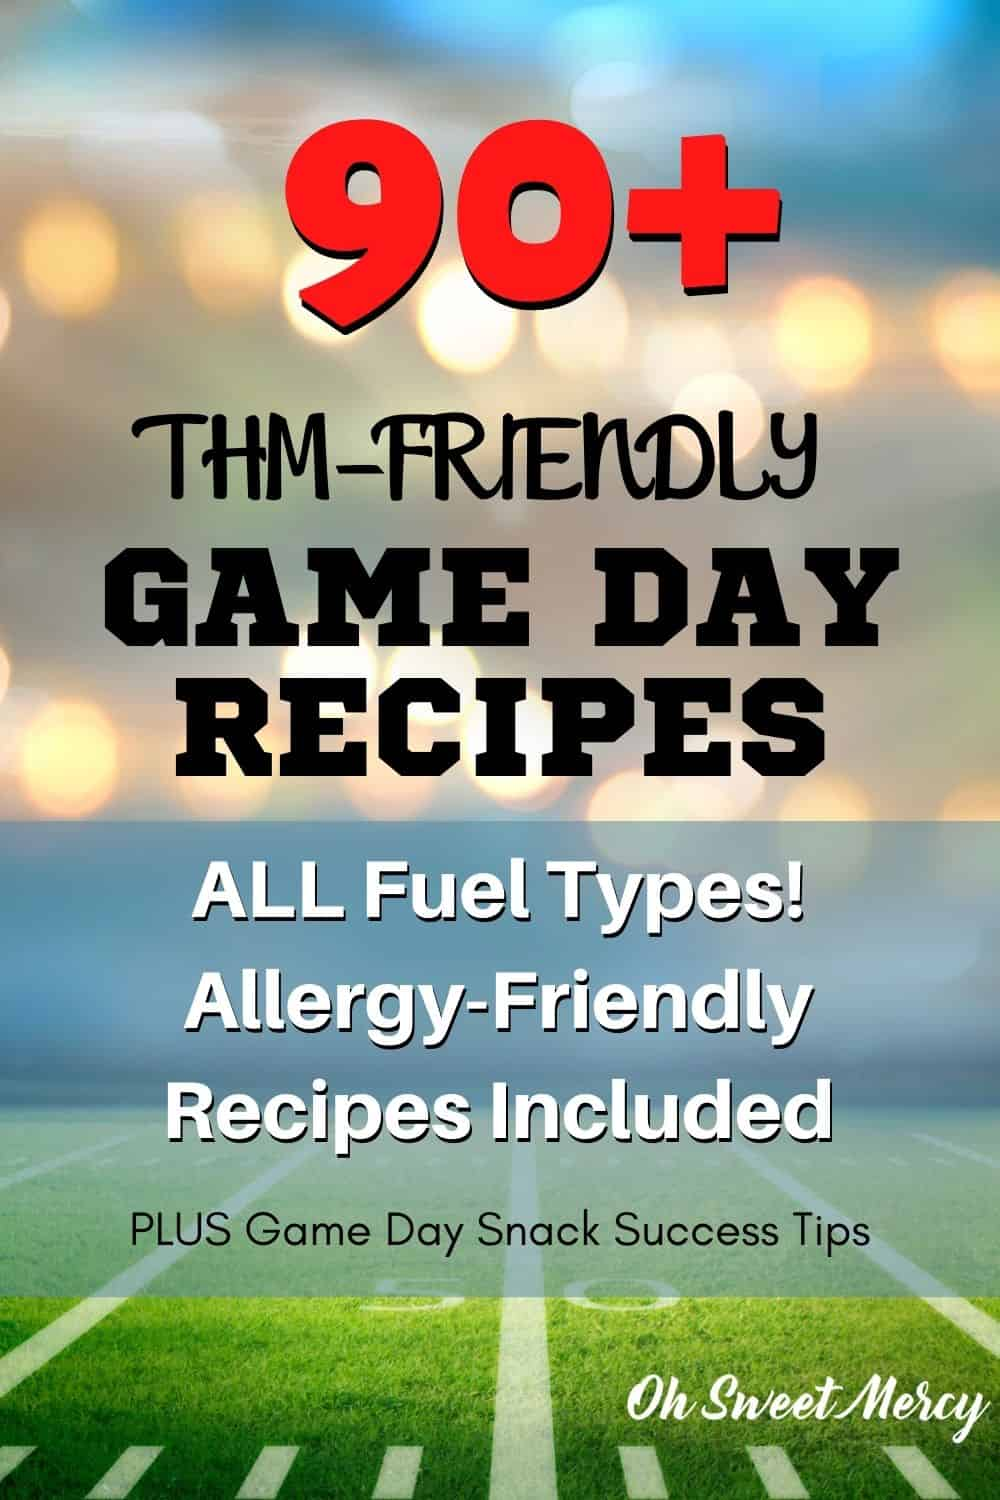 Does the Big Game cause you to fumble? Make a THM-centered game plan and own your snack game! 90+ THM Game Day Recipes for ALL fuel types, allergy friendly recipes included, PLUS tips for game day snack success. #thm #snacks #superbowlfood #gamedayrecipes #lowcarb #lowfat @ohsweetmercy